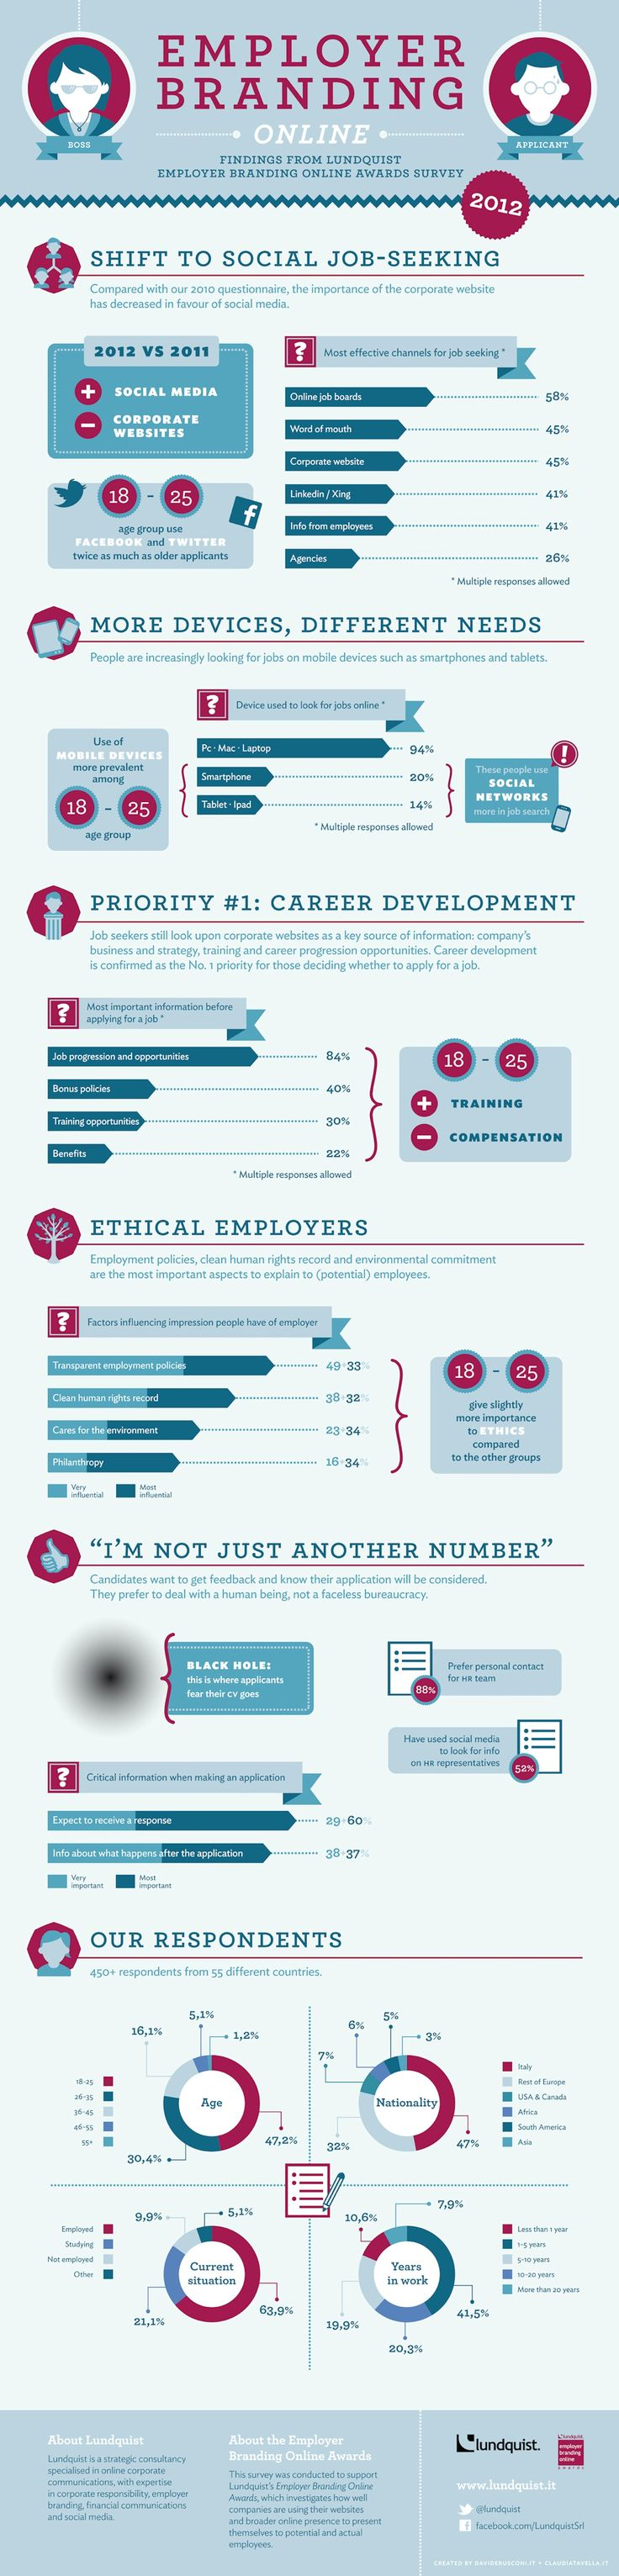 Global Best Employers - humancapital.aon.com